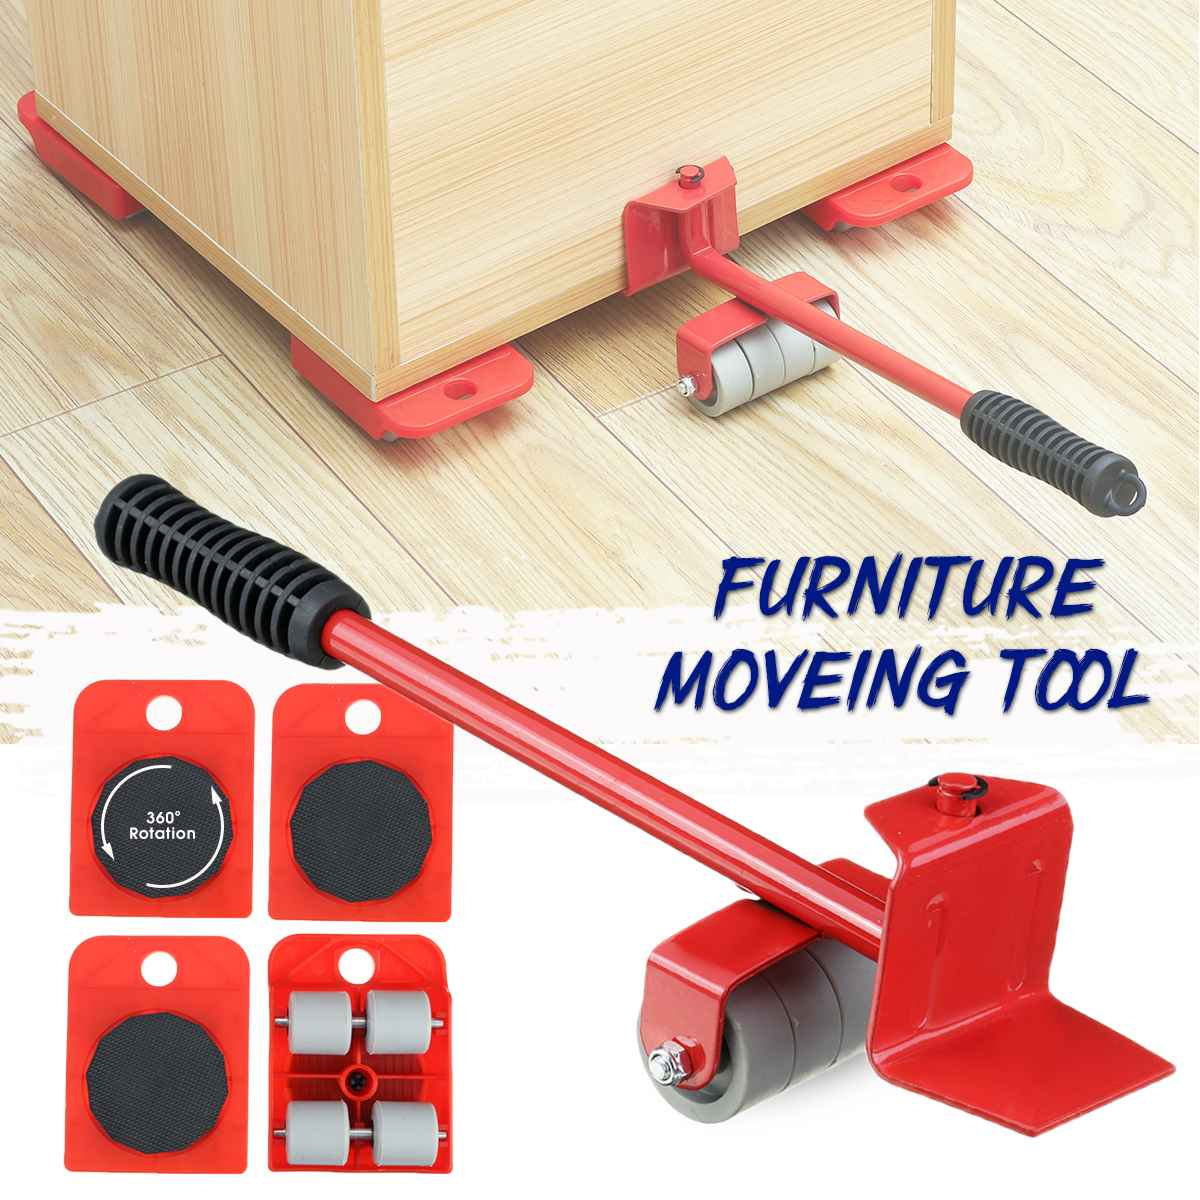 5Pcs Furniture Lifter Mover Furniture Moving Transport Set Heavy Hand Tool Set Mover Roller + Wheel Bar